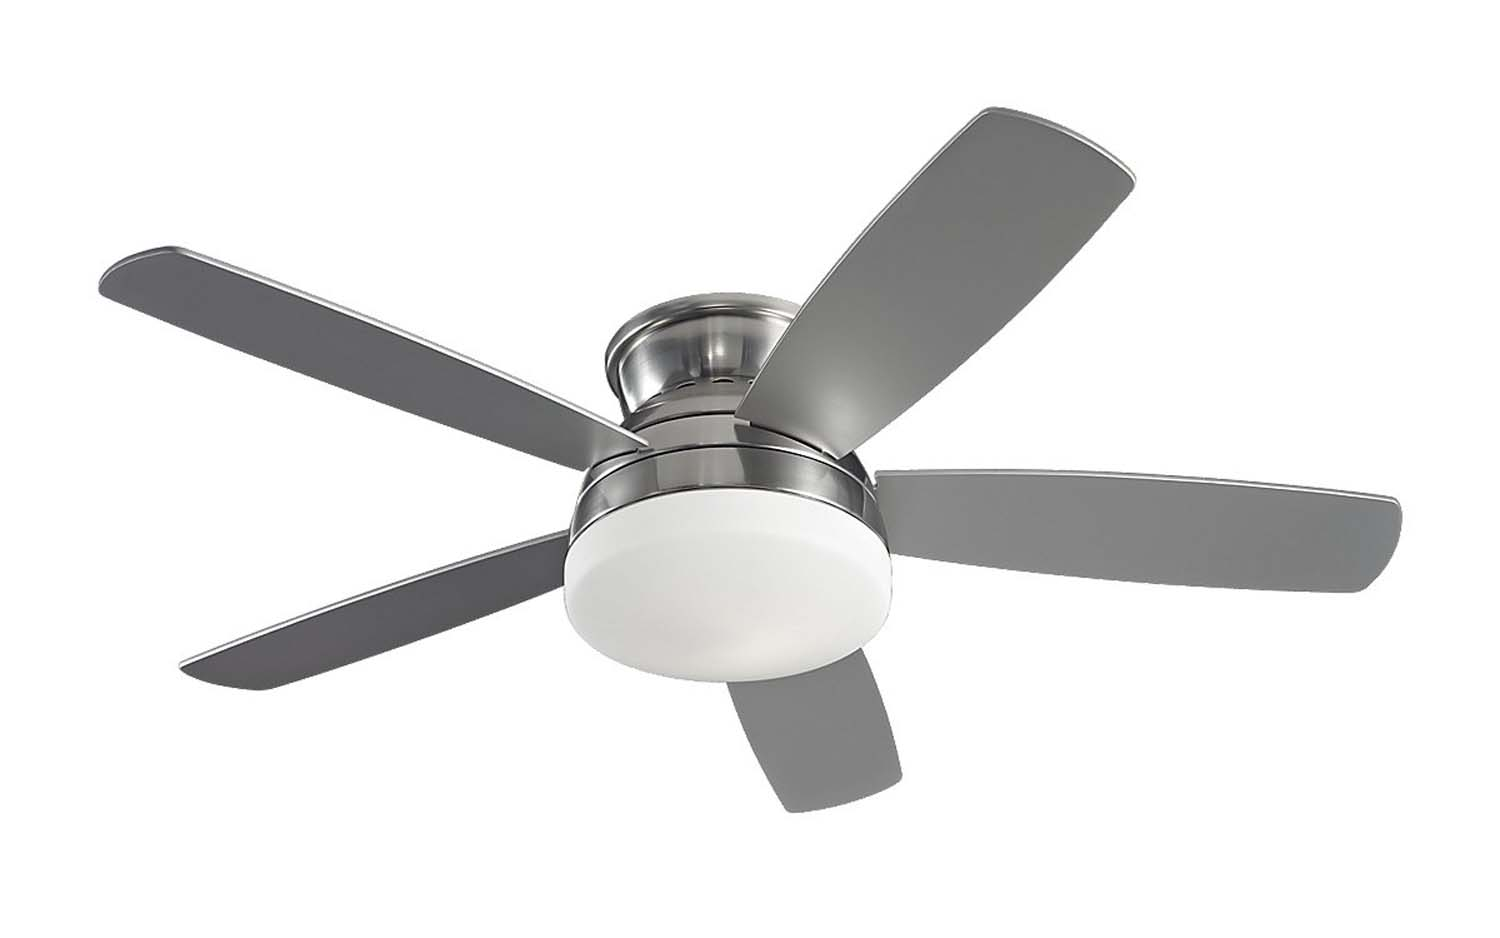 52 inchCeiling Fan from the Traverse collection by Monte Carlo 5TV52BSD